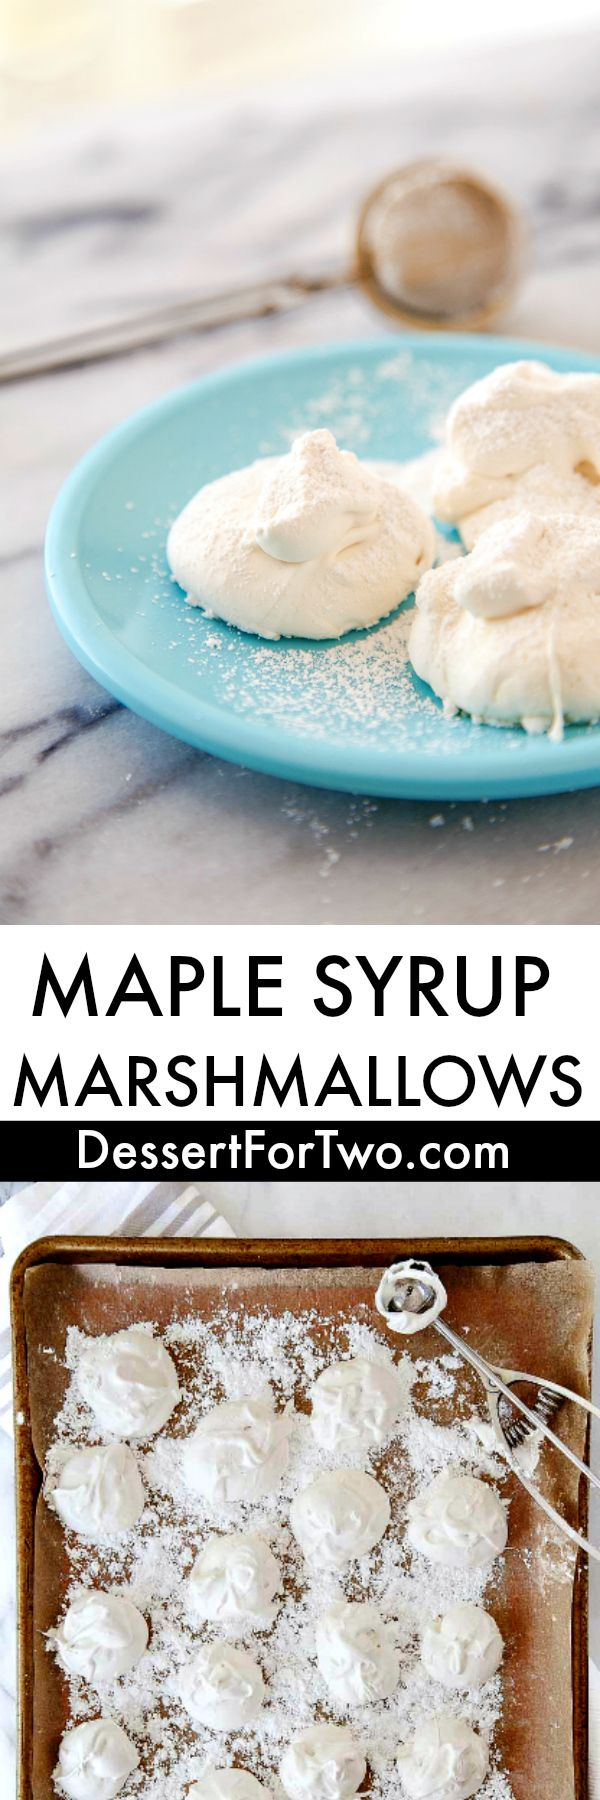 Marshmallows made without corn syrup. Maple syrup marshmallows. Clean eating healthy marshmallow recipe.